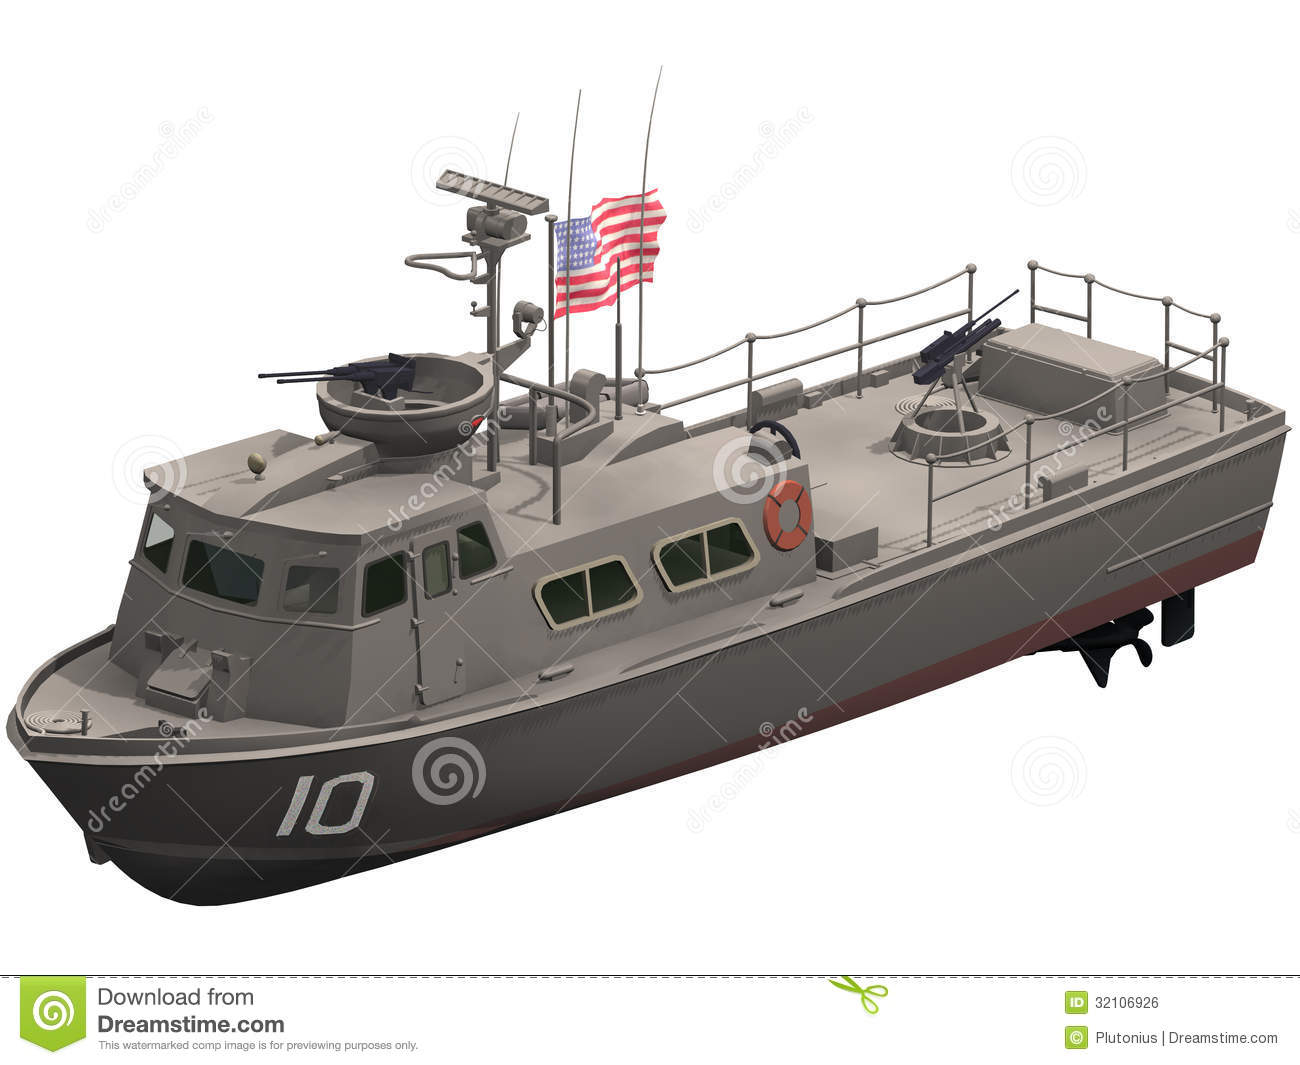 3d Rendering Of A Swift Patrol Boat Royalty Free Stock Image - Image: 32106926